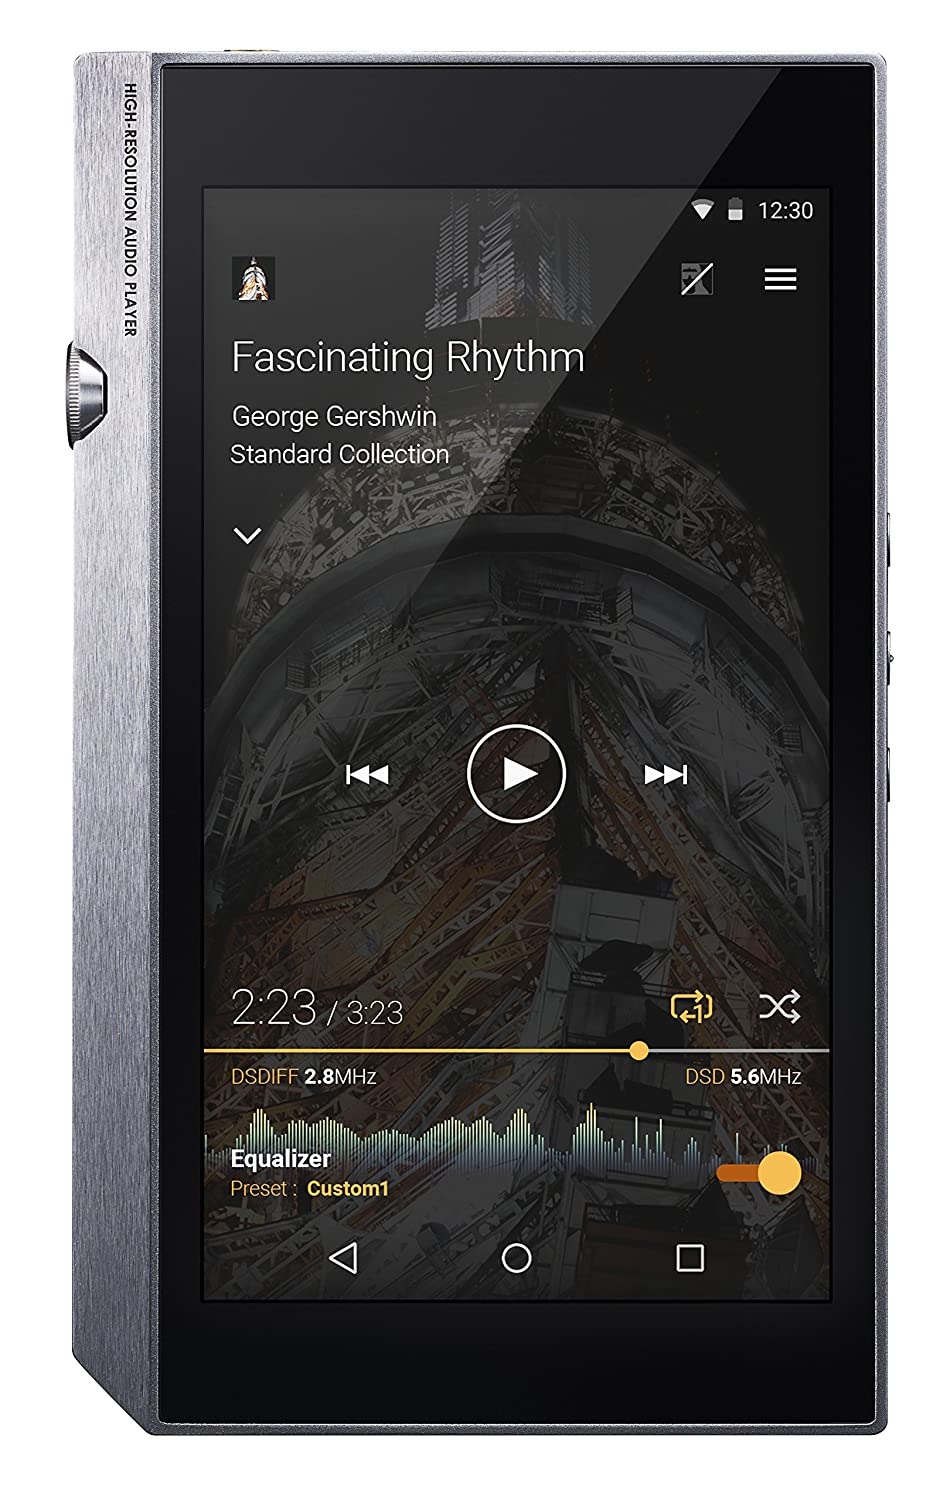 Top 10 Best Portable Hi-Res Audio Players (2019 Reviews) 8